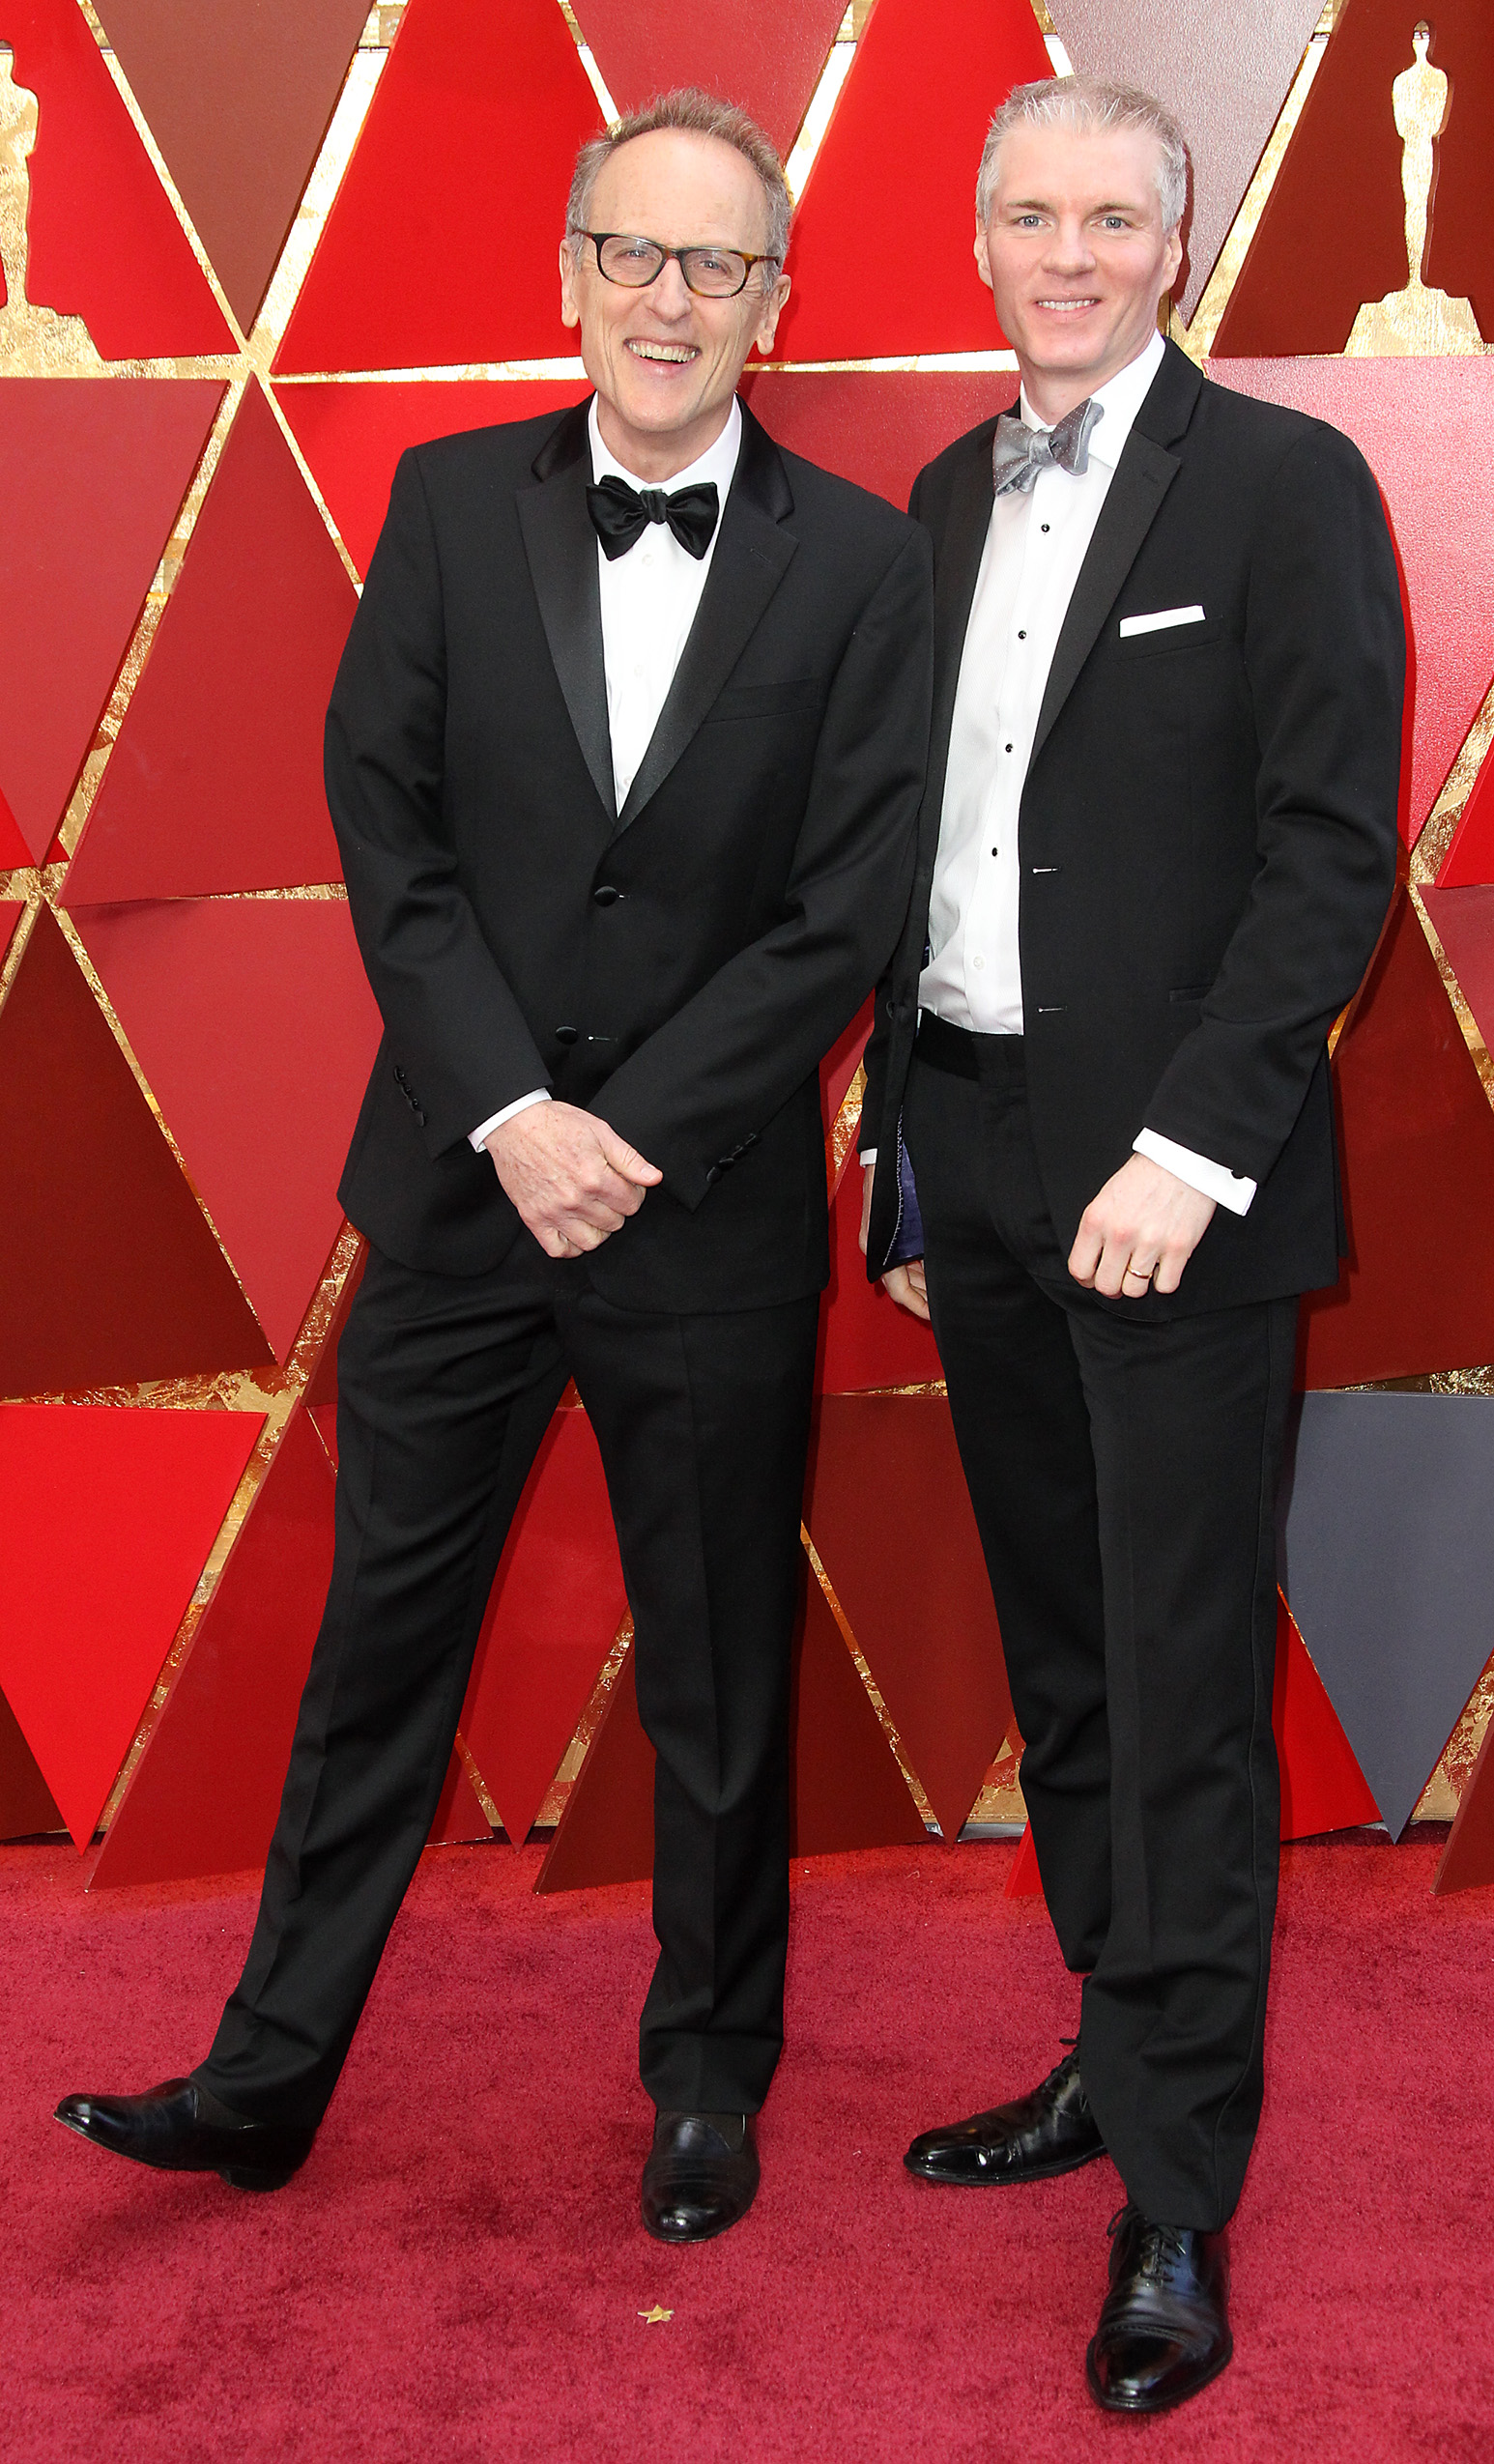 Thomas Lennon and Brandon Chrostowski{&nbsp;}arrive at the 90th Annual Academy Awards (Oscars) held at the Dolby Theater in Hollywood, California. (Image: Adriana M. Barraza/WENN.com) <p></p>